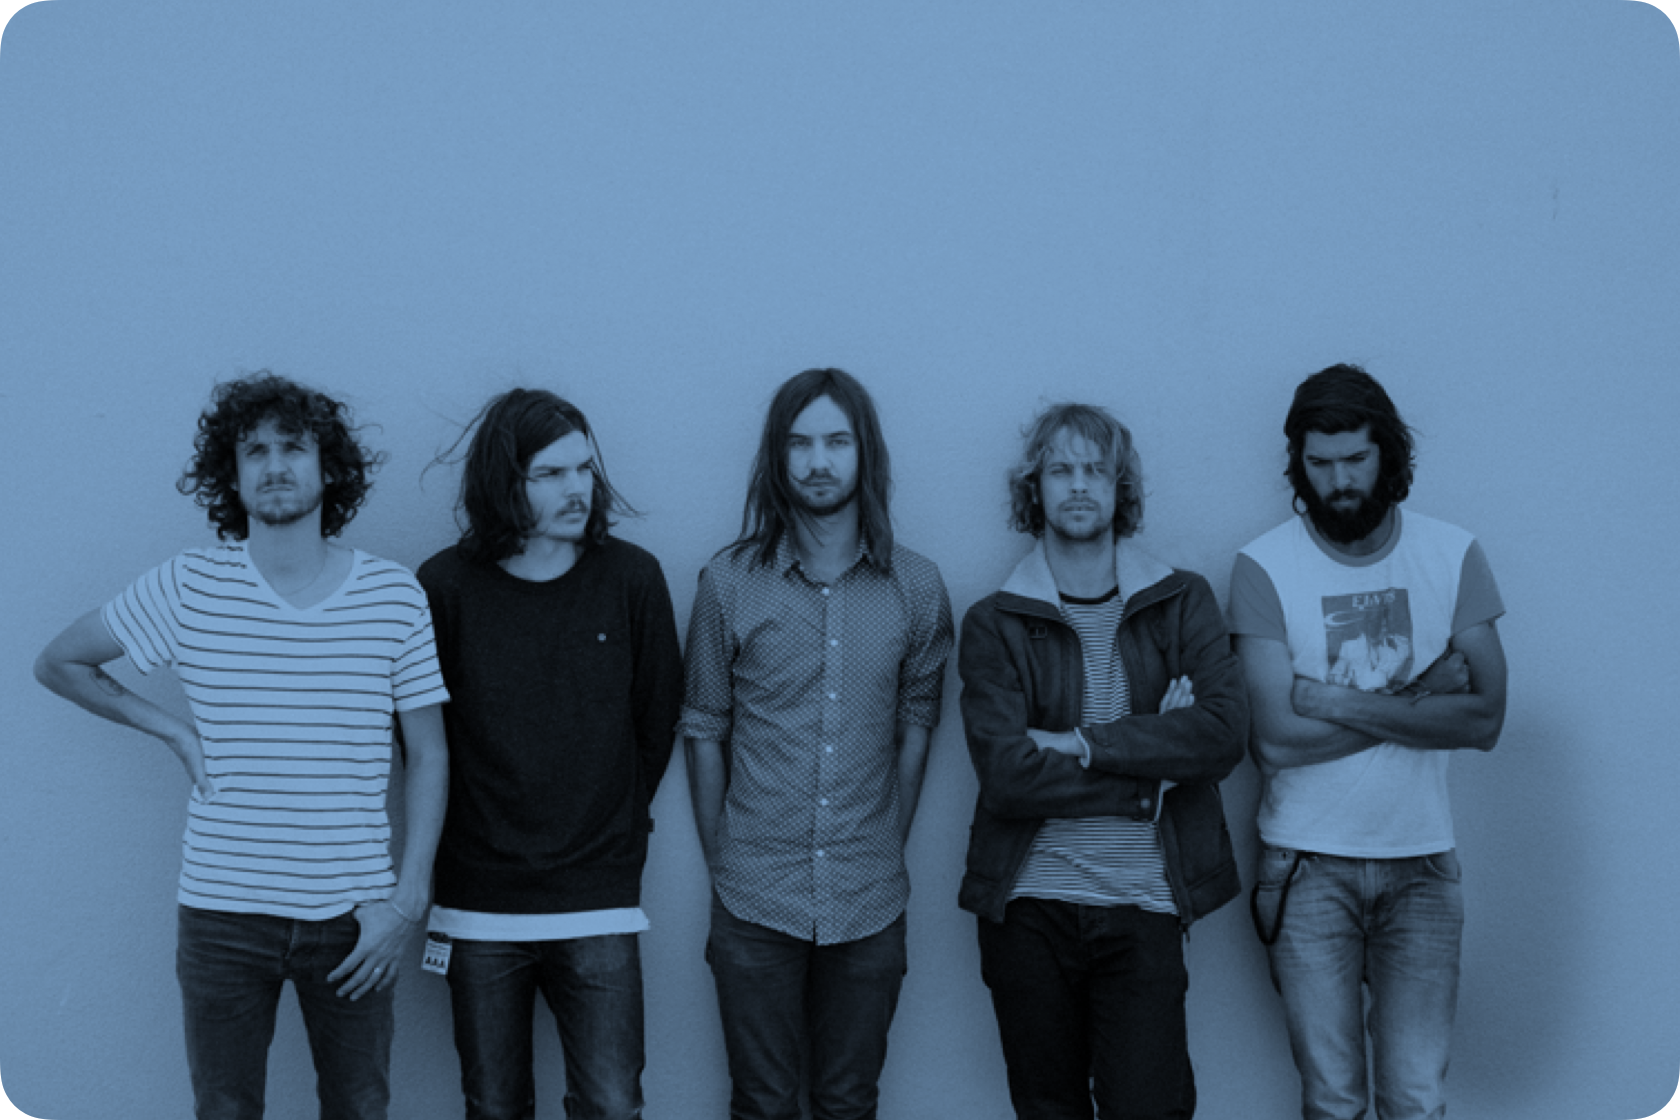 Members of Tame Impala leaning up against a white wall